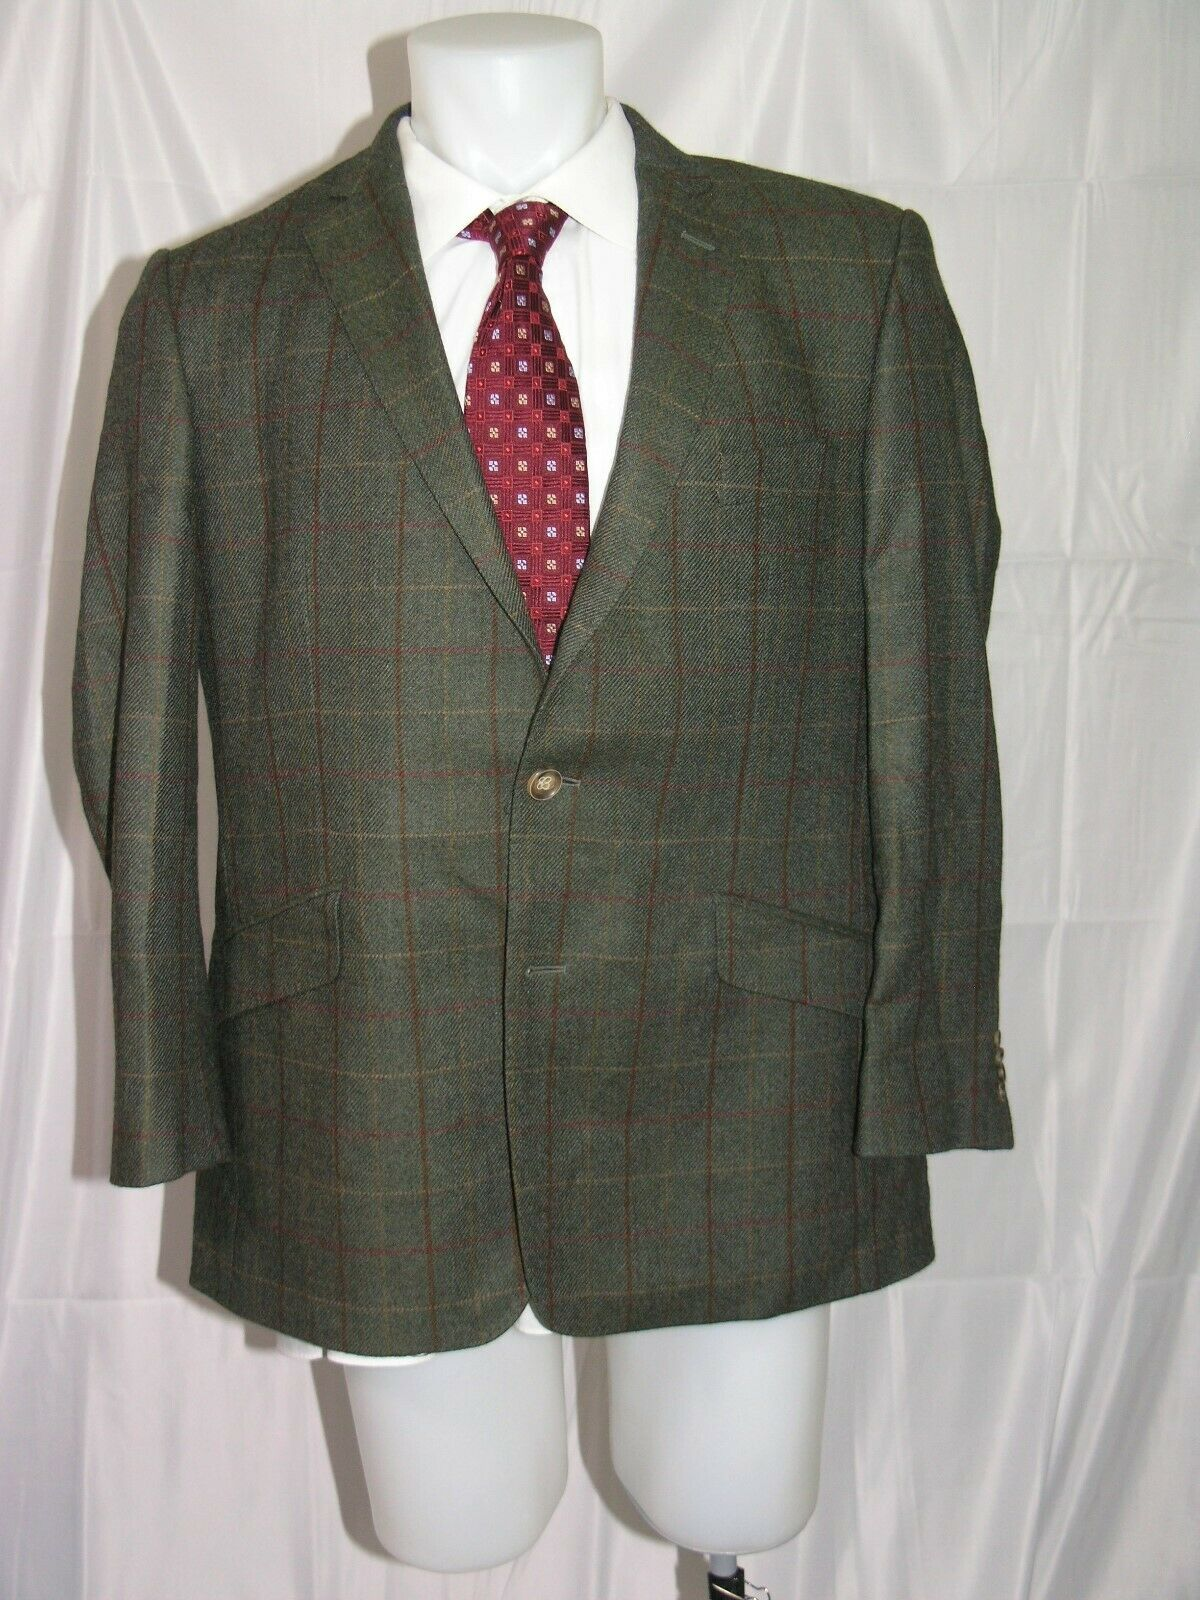 Beretta Magee Flannel Weight Window Pane Plaid Two Button Hunting Jacket 44R